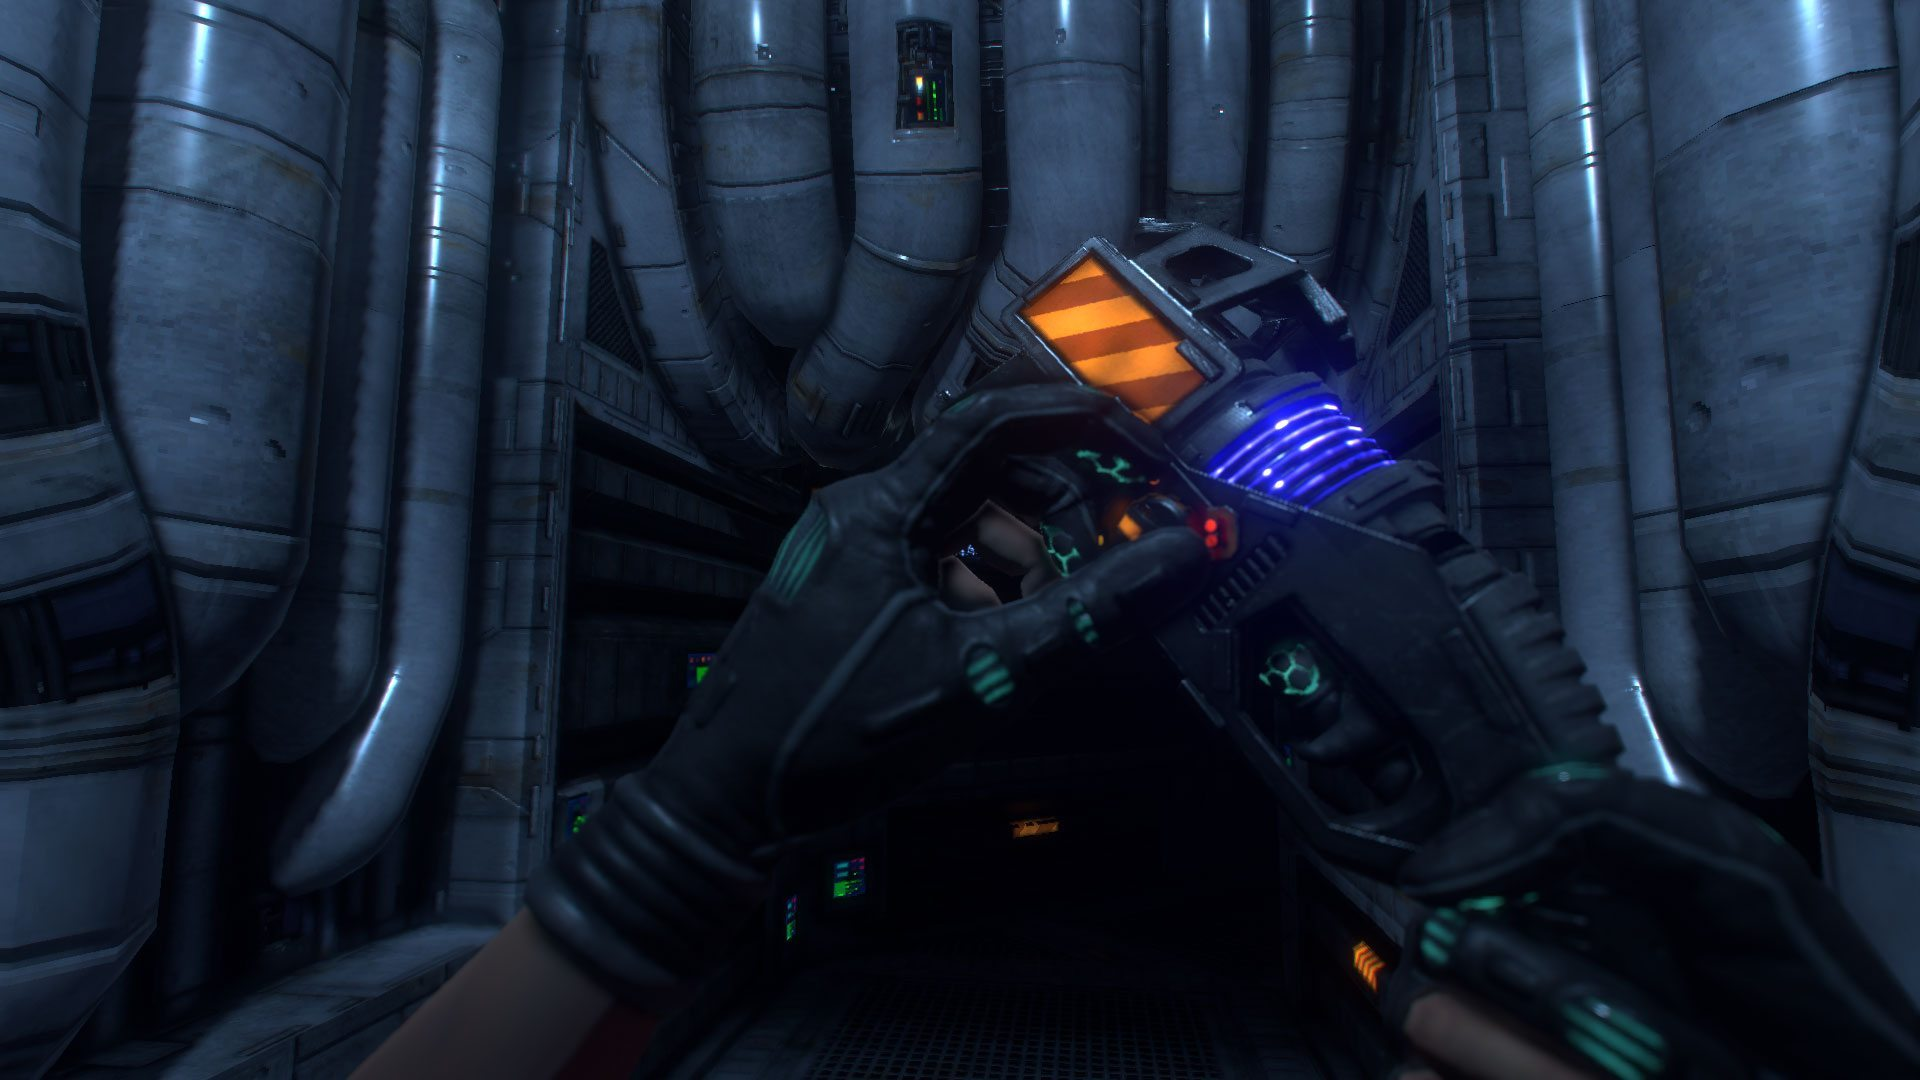 System Shock Remastered